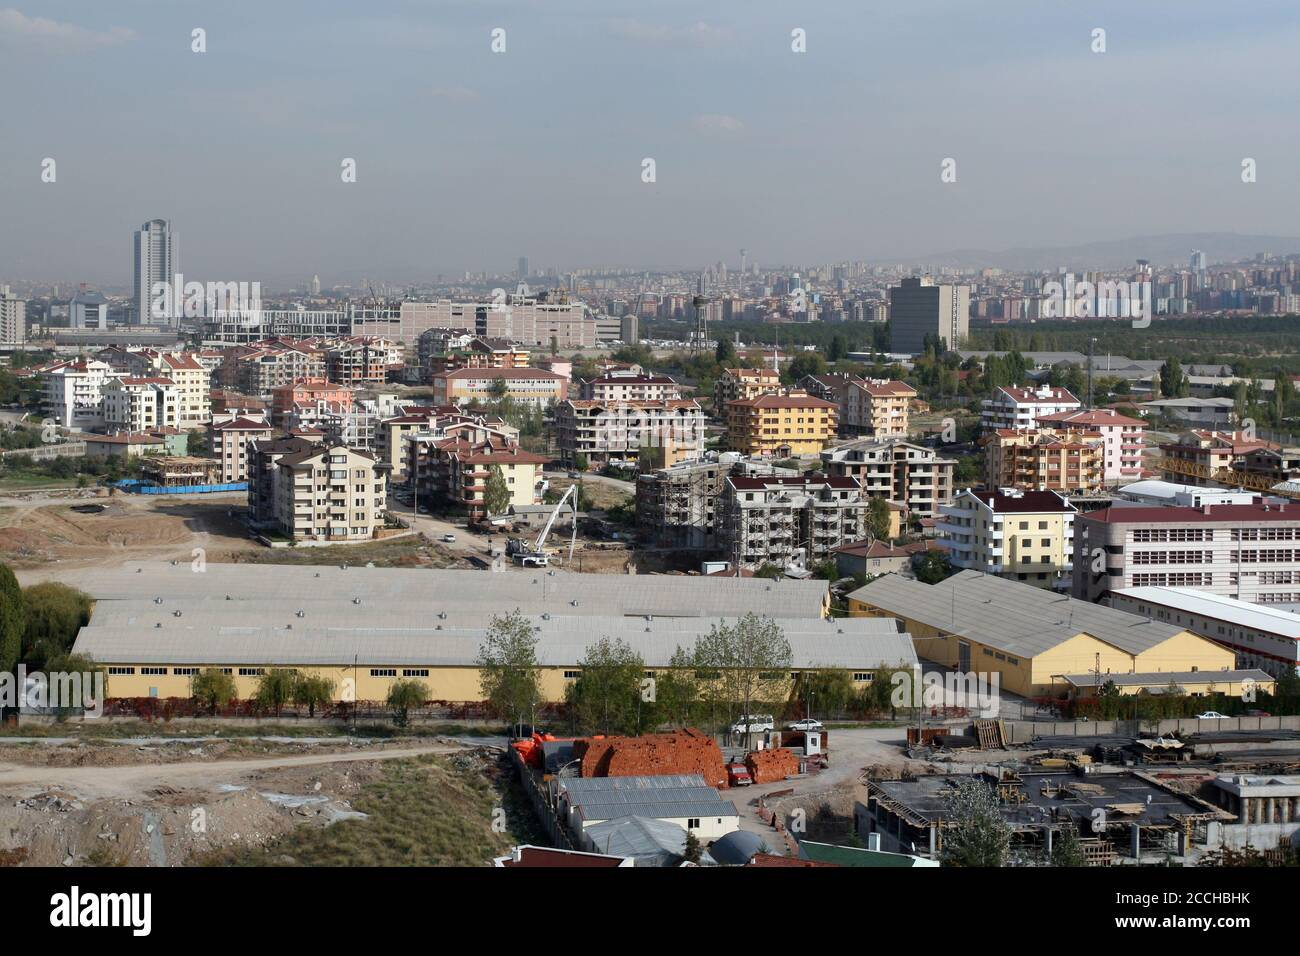 https www alamy com the capital of turkey the biggest construction made in ankara ankaya dikmen and ncek districts are seen in the back image369175903 html